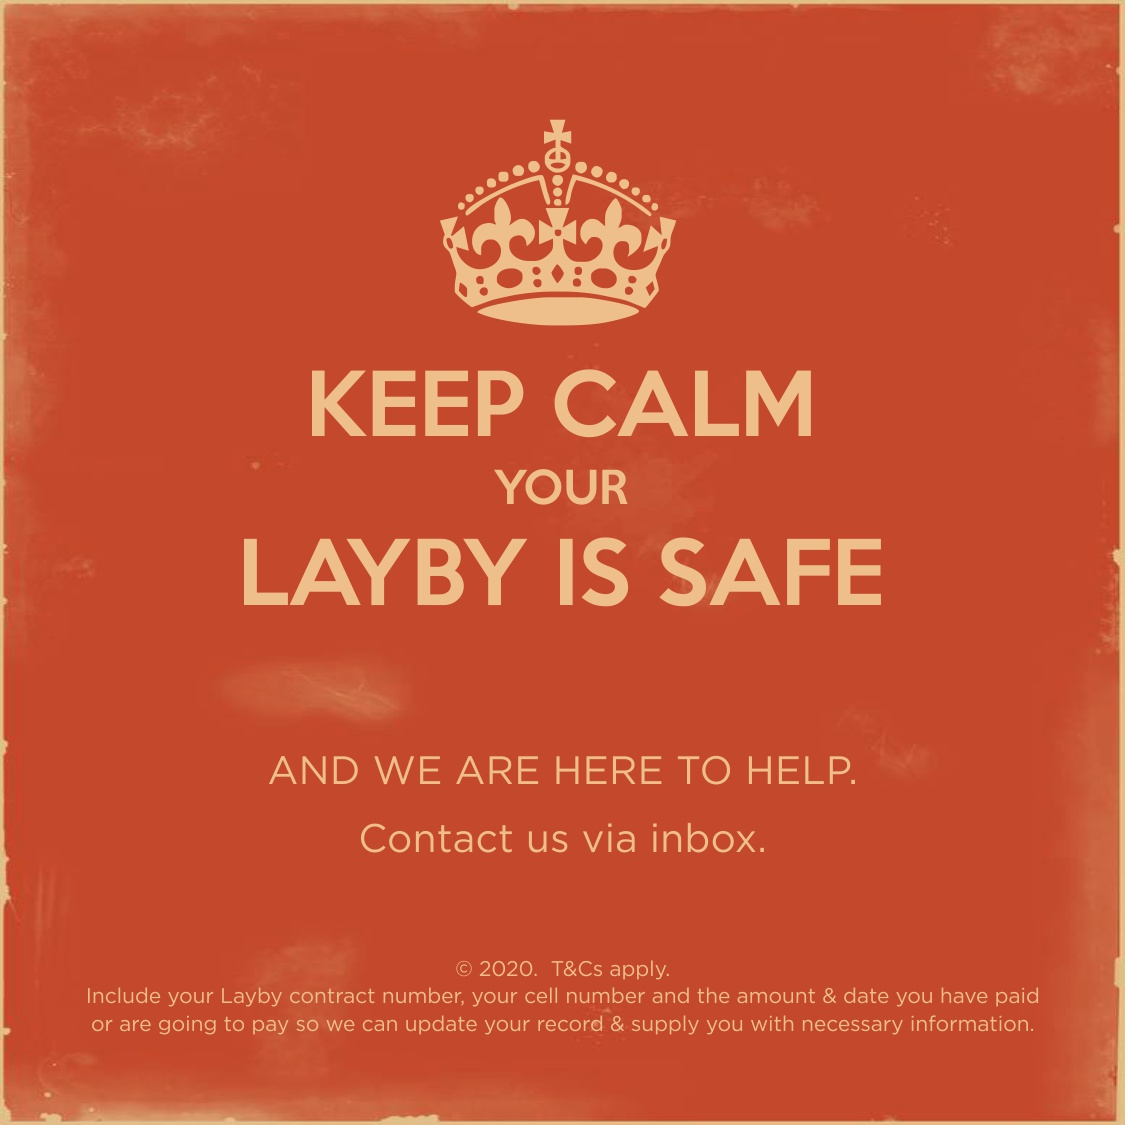 YOUR LAYBY IS SAFE & WE ARE HERE TO HELP.